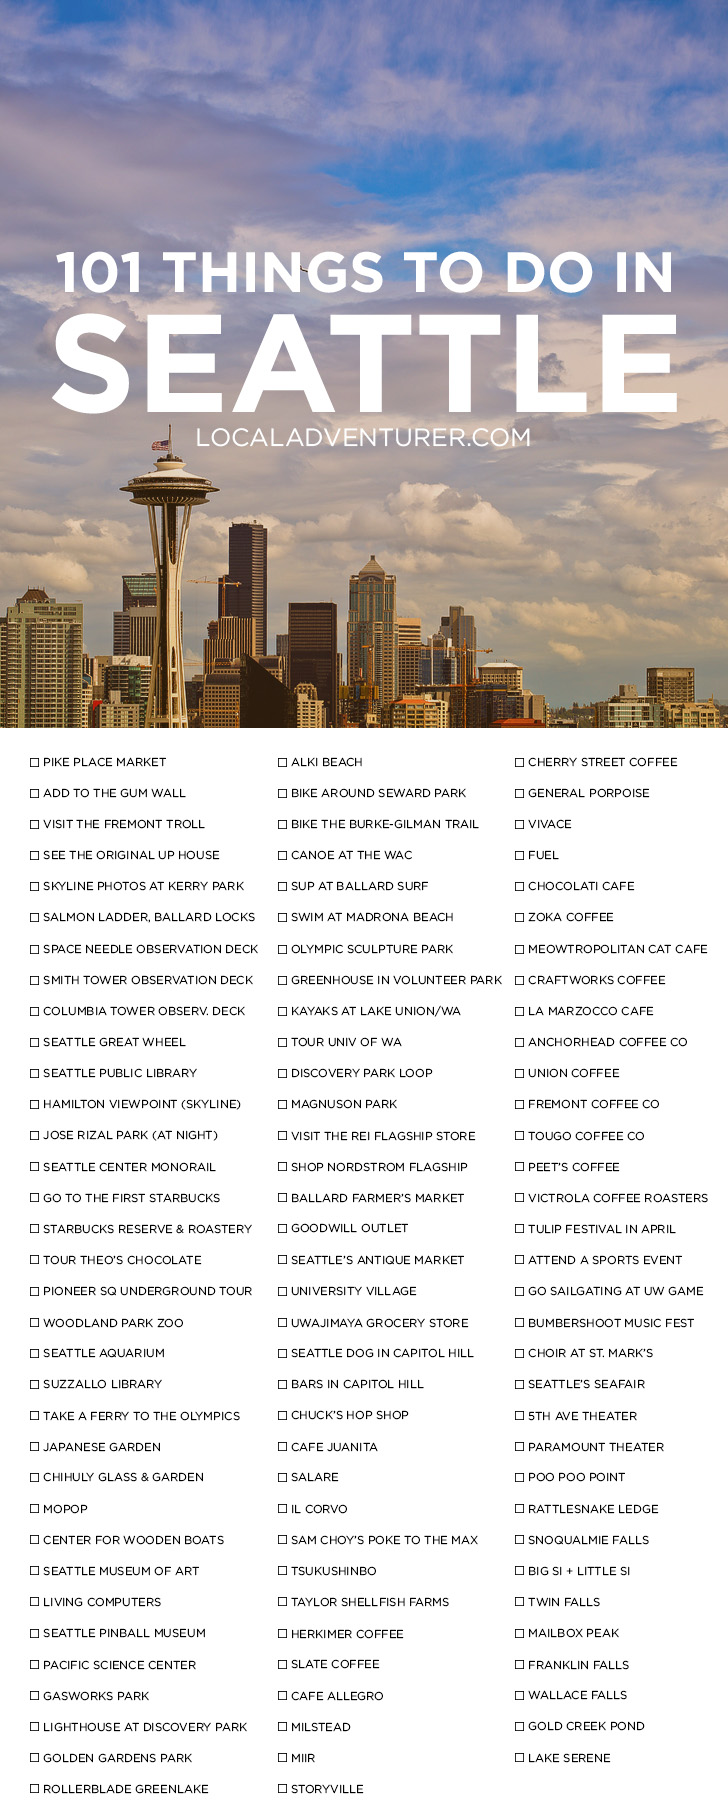 101 Things to Do in Seattle Washington { click through to get the printable version } - the Ultimate Seattle Bucket List - from the popular spots everyone has to do at least once to the spots a little more off the beaten path. // localadventurer.com